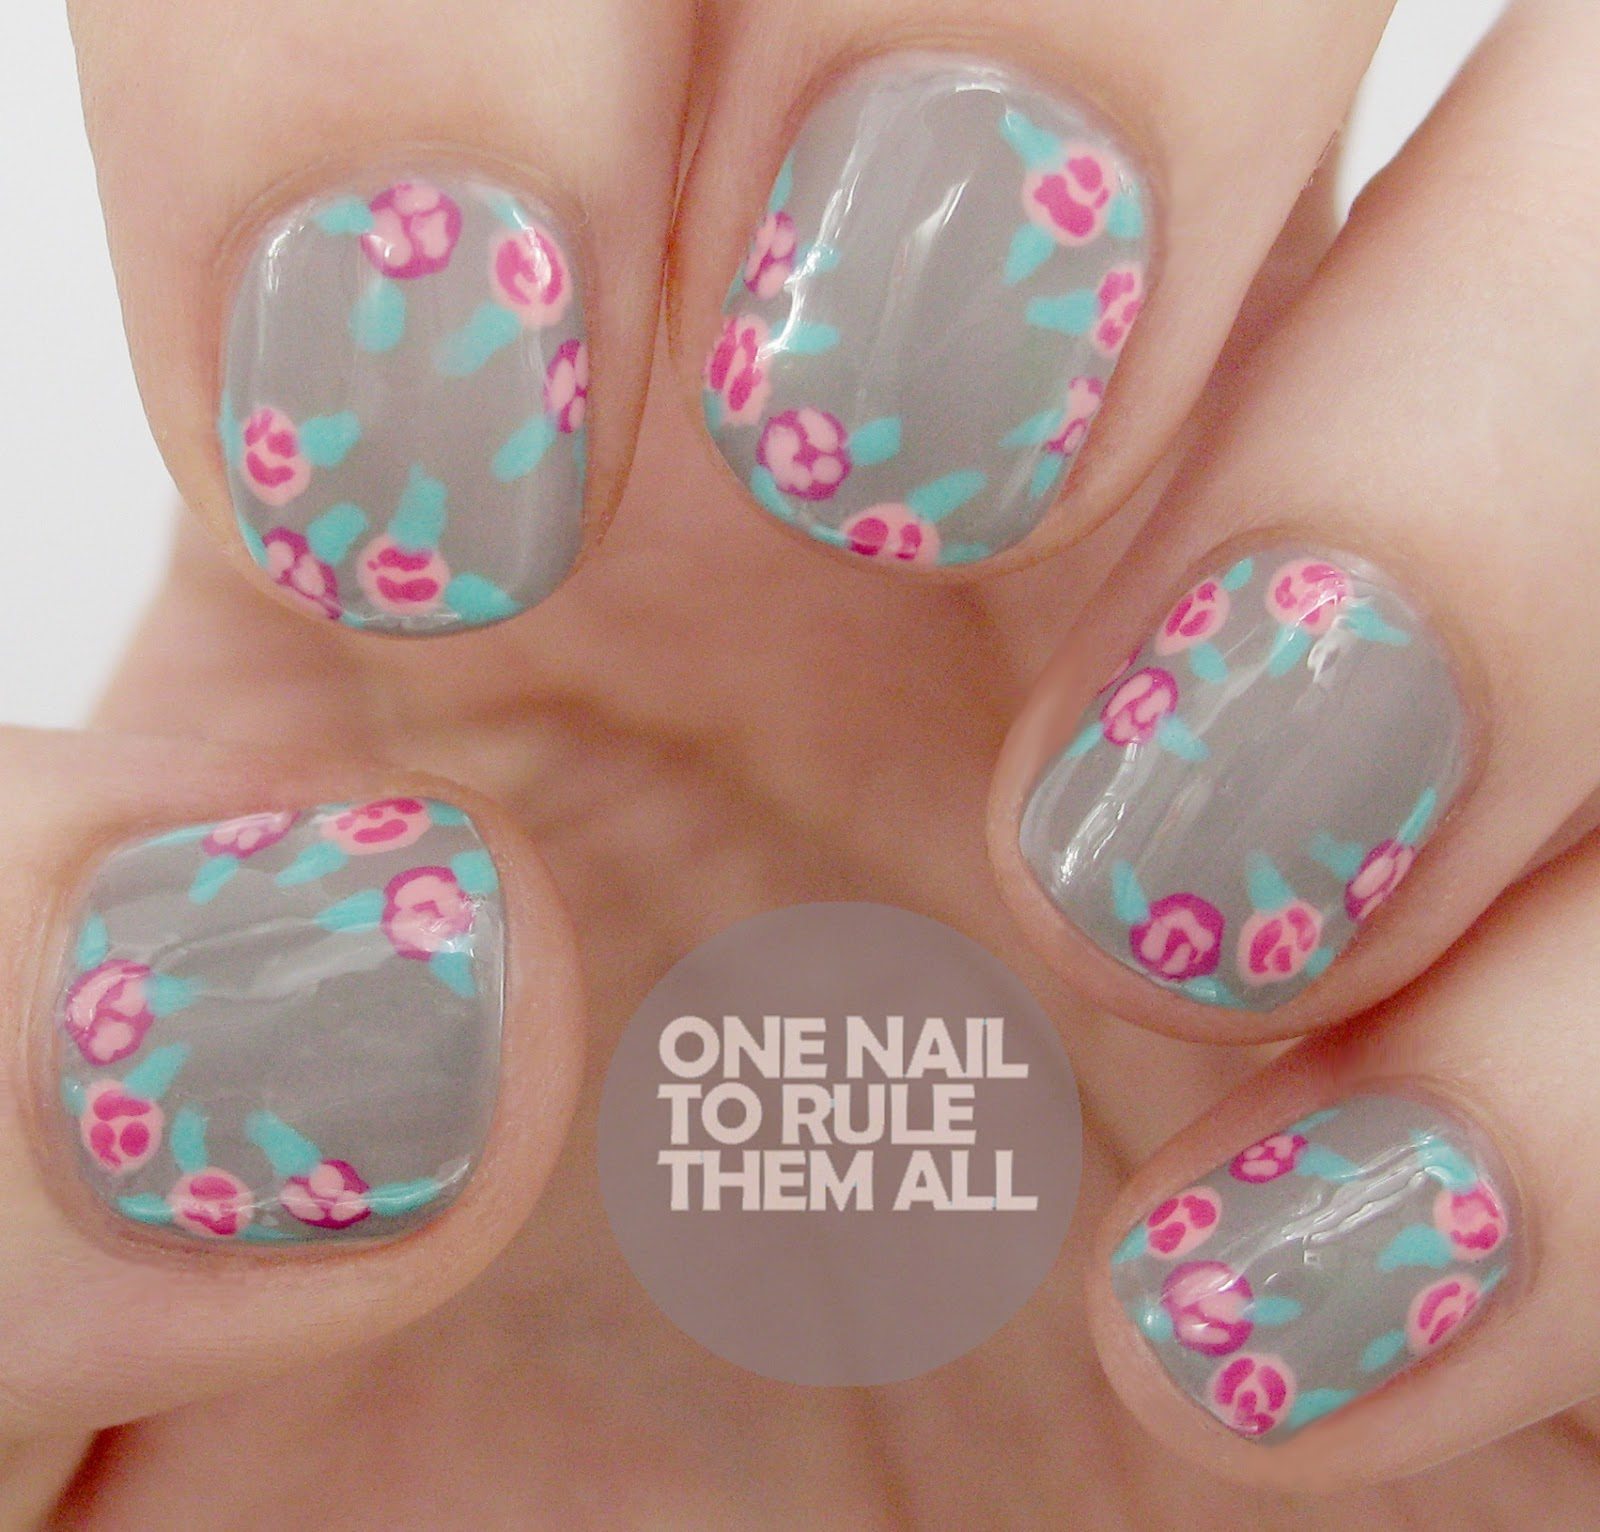 Essie Then And Now Review Nail Art Giveaway Nail Art Designs